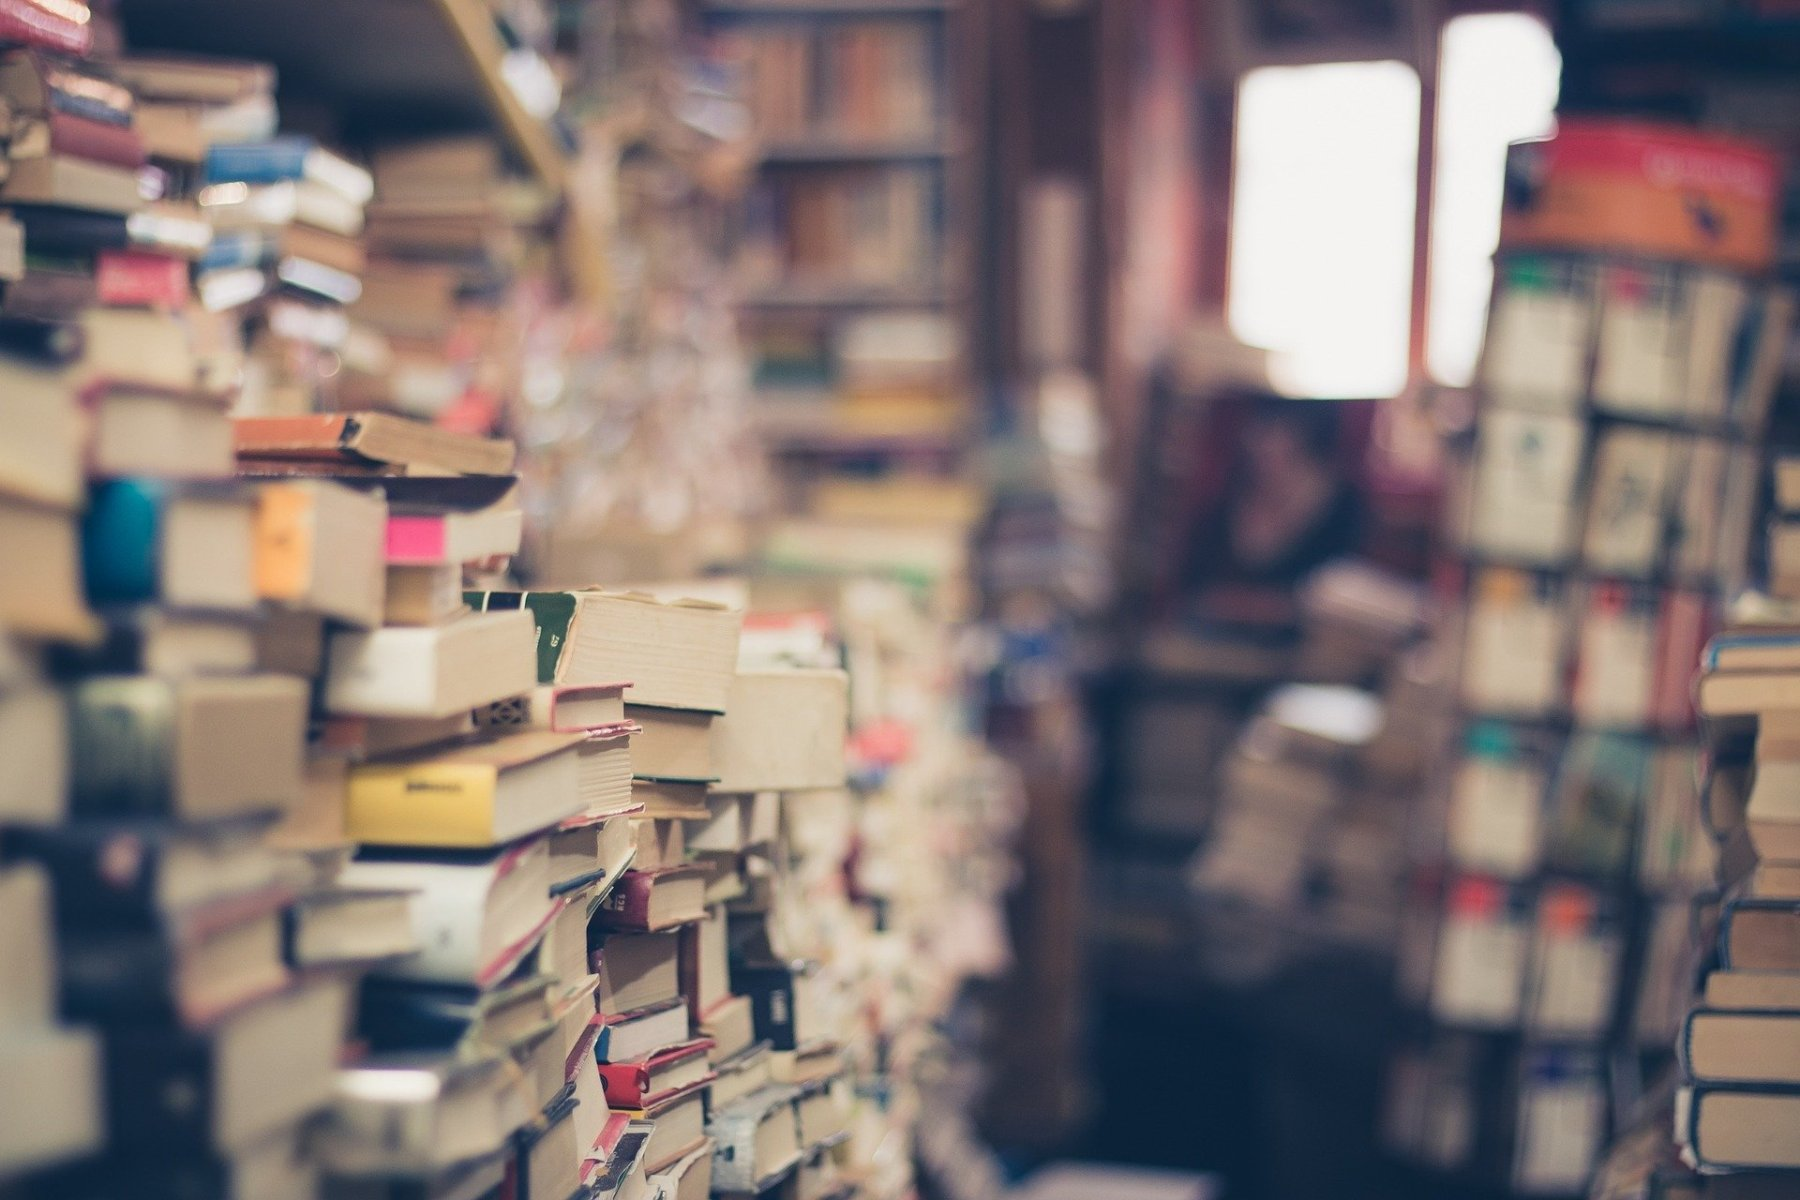 Stacks of books in a bookshop